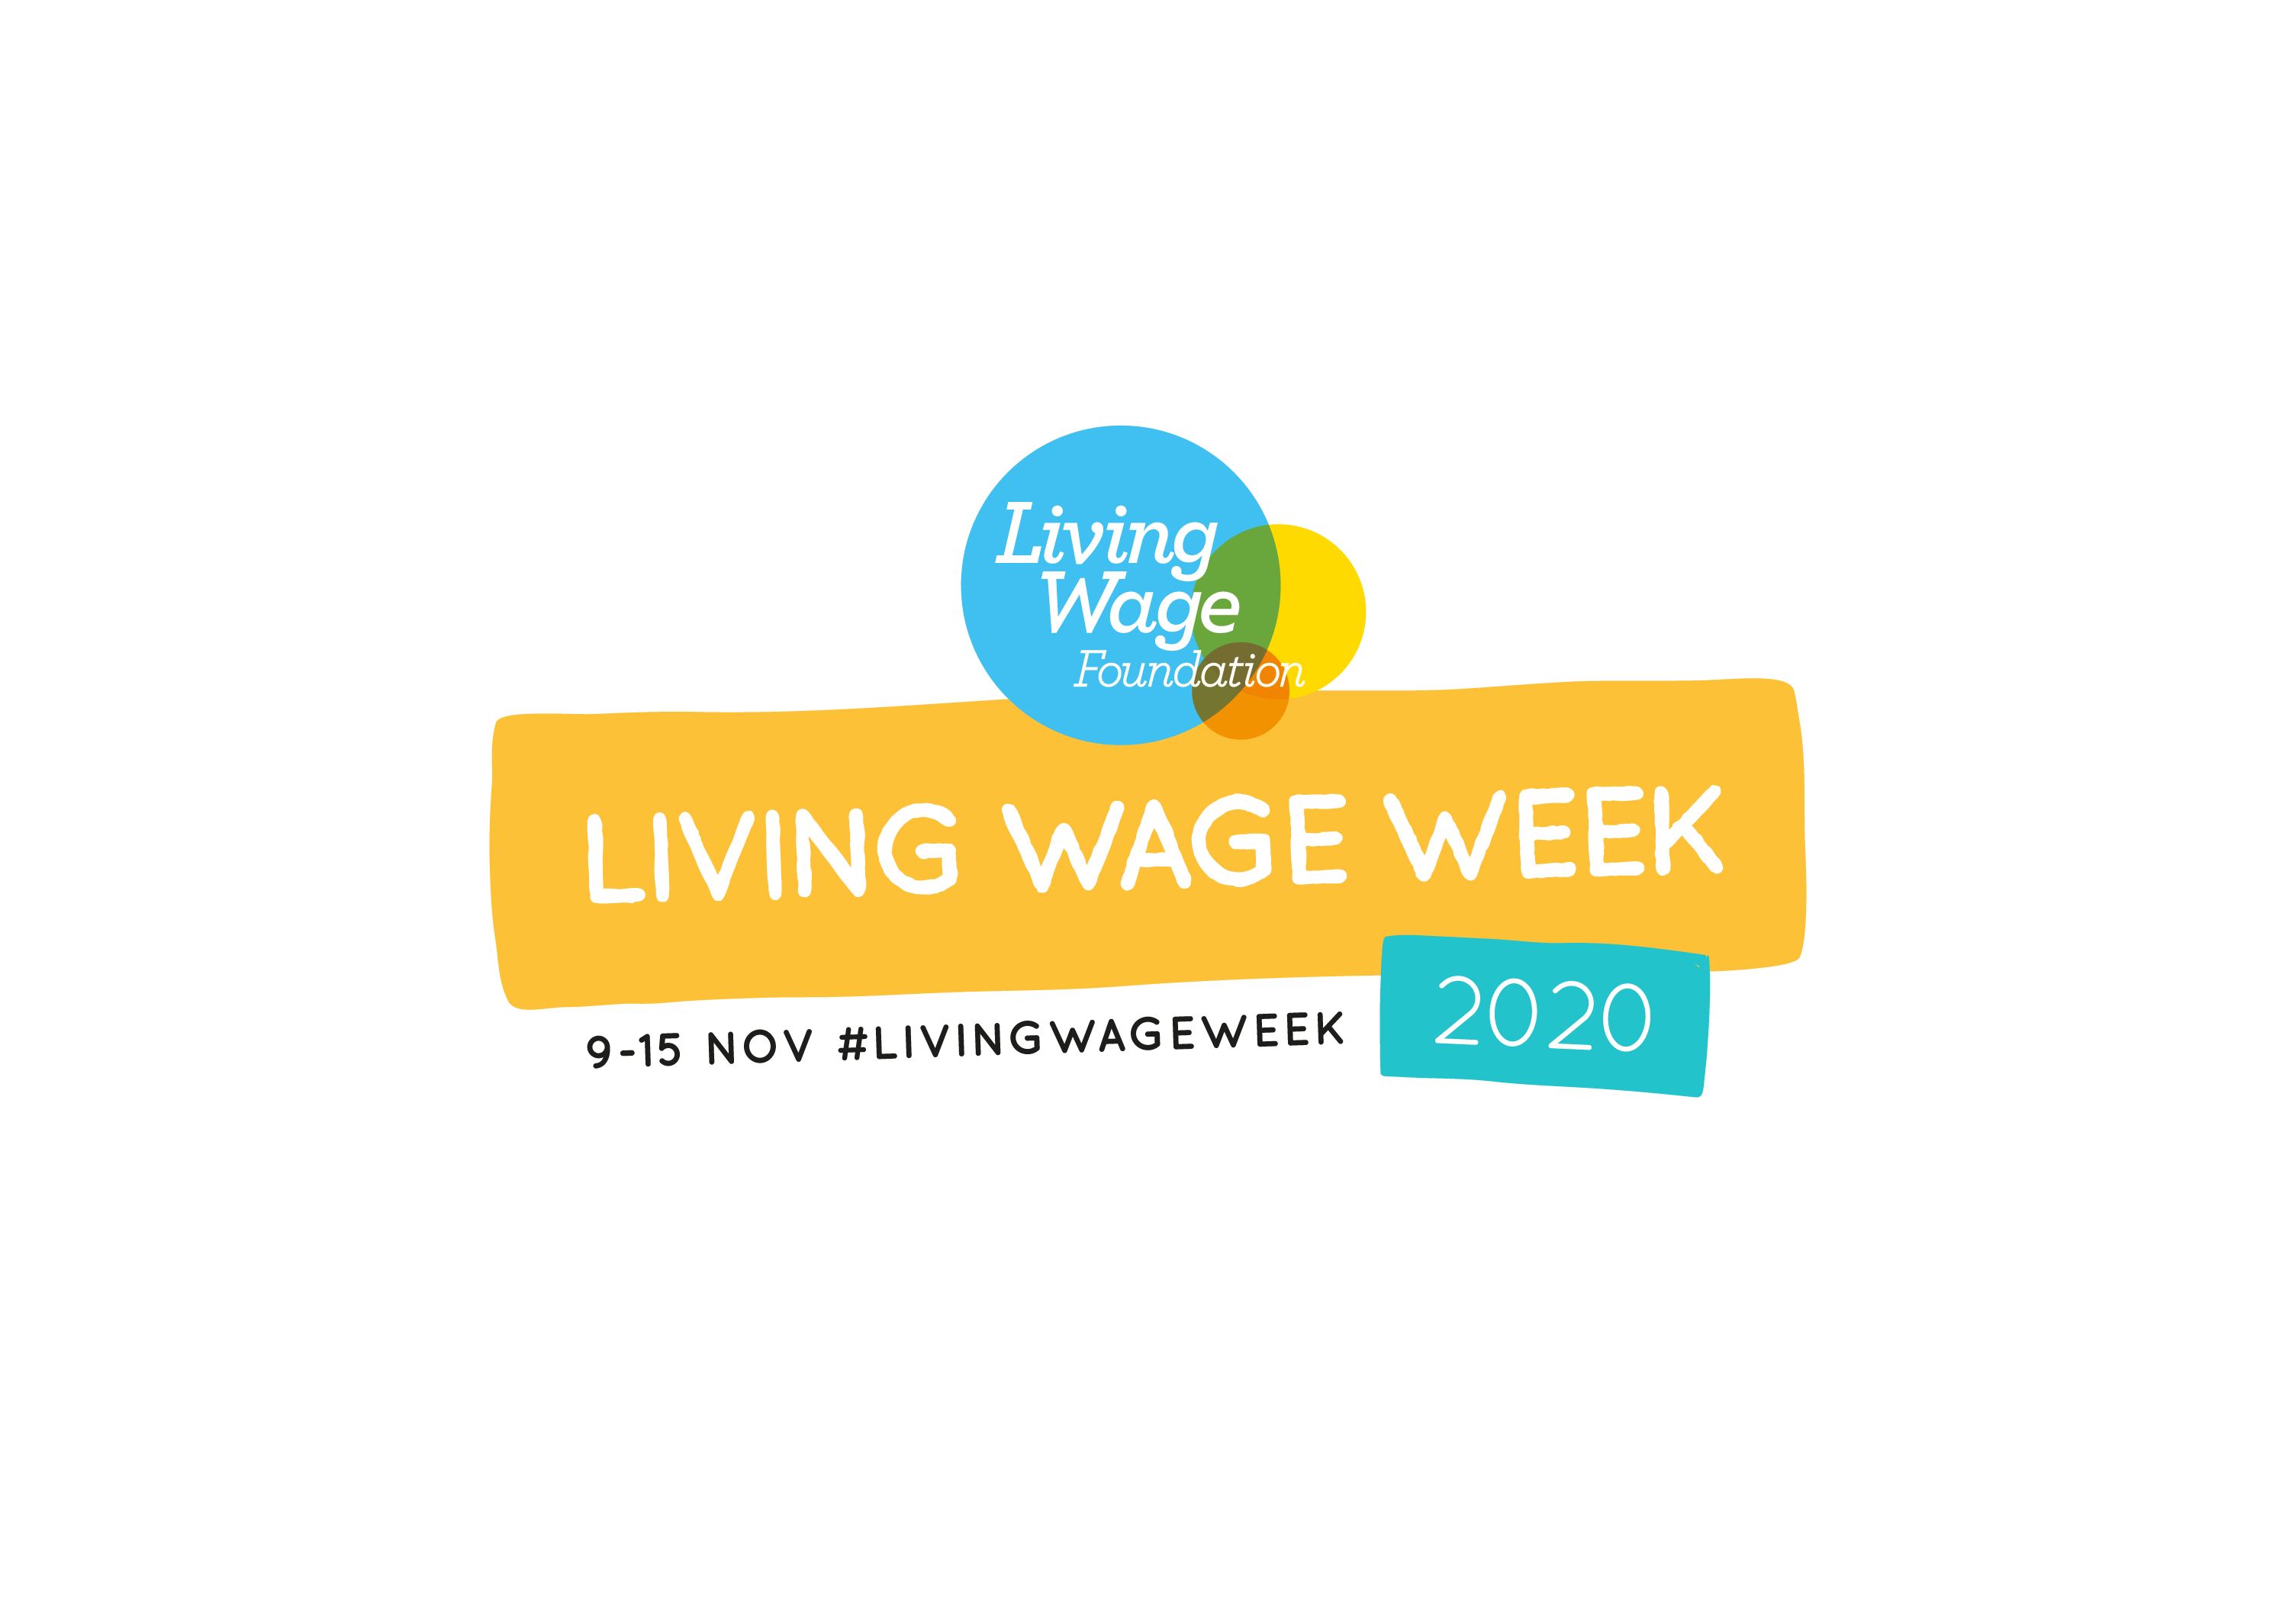 Living Wage Week coincides with VMI's anniversary achieving accreditation